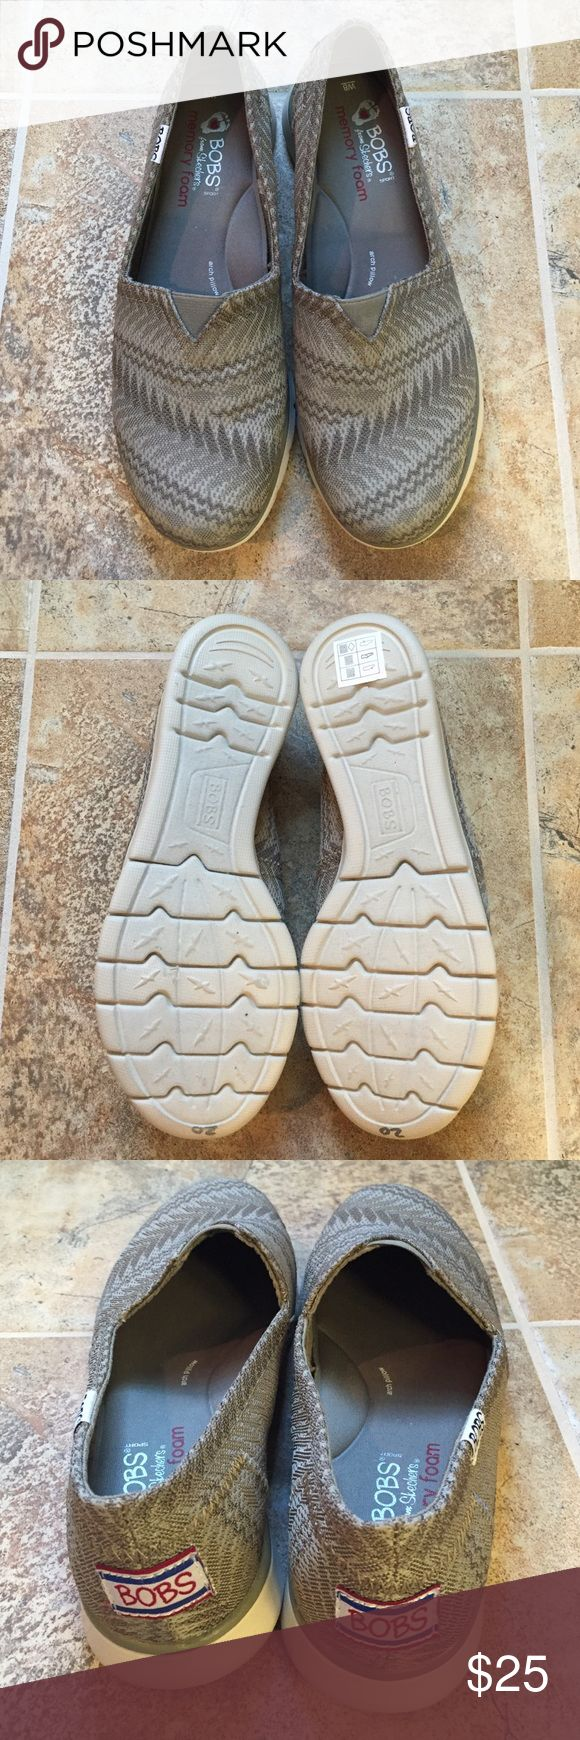 "BOBS by Skechers Pureflex Slip On Shoe NWOT Never worn. Has ""20"" in silver sharpie written on bottom. Purchased from outlet store but never worn. Shock absorbing midsole. Tan colored with great Aztec like print. Also have in black.  See other listing. Can go lower on Ⓜ️ Skechers Shoes Flats & Loafers"